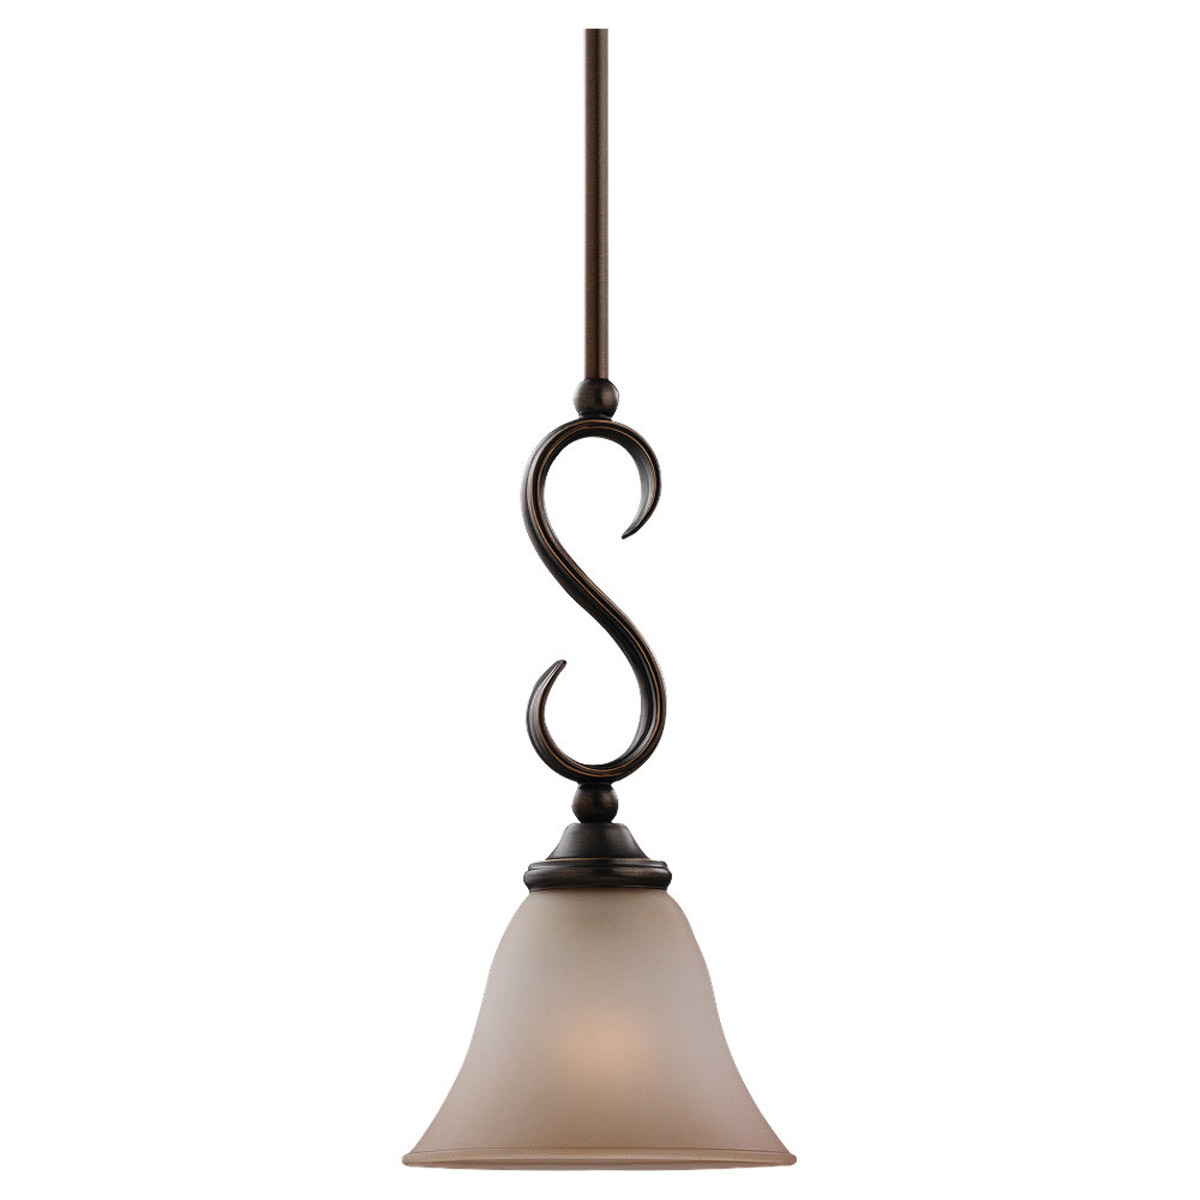 Sea Gull Lighting Rialto 1 Light Mini Pendant in Russet Bronze 61360-829 photo